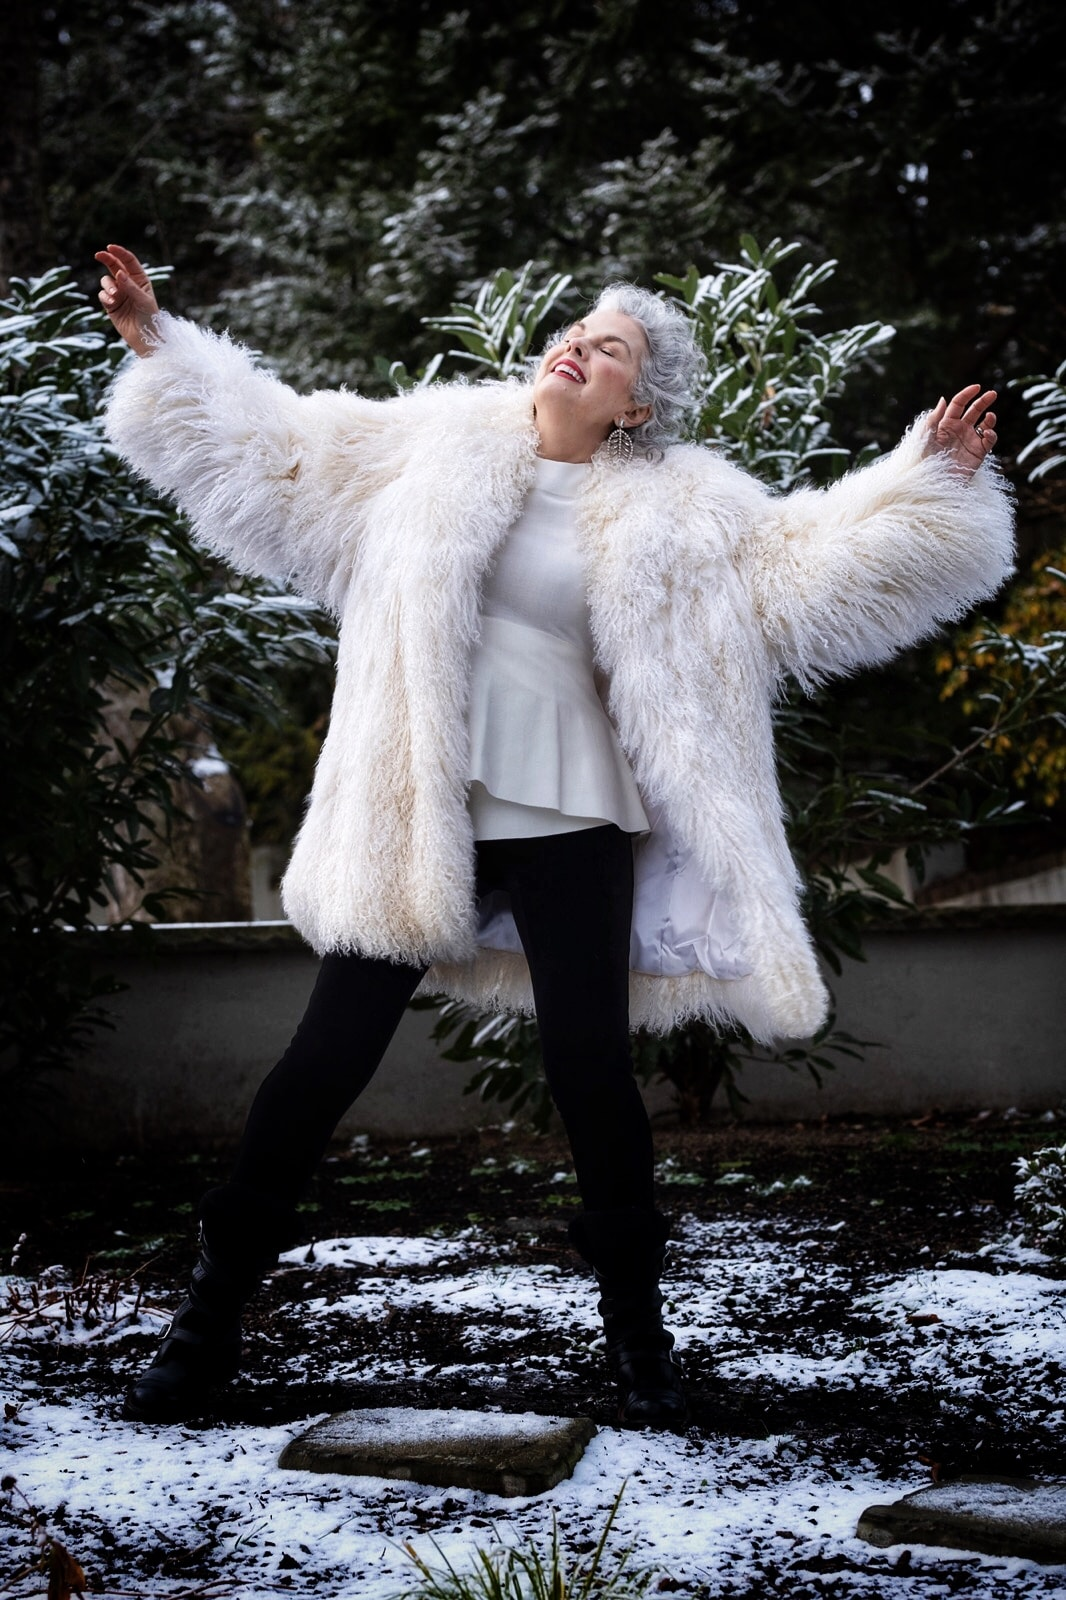 Kerry Lou in shaggy jacket on Cindy Hattersley's blog for Ageless Style